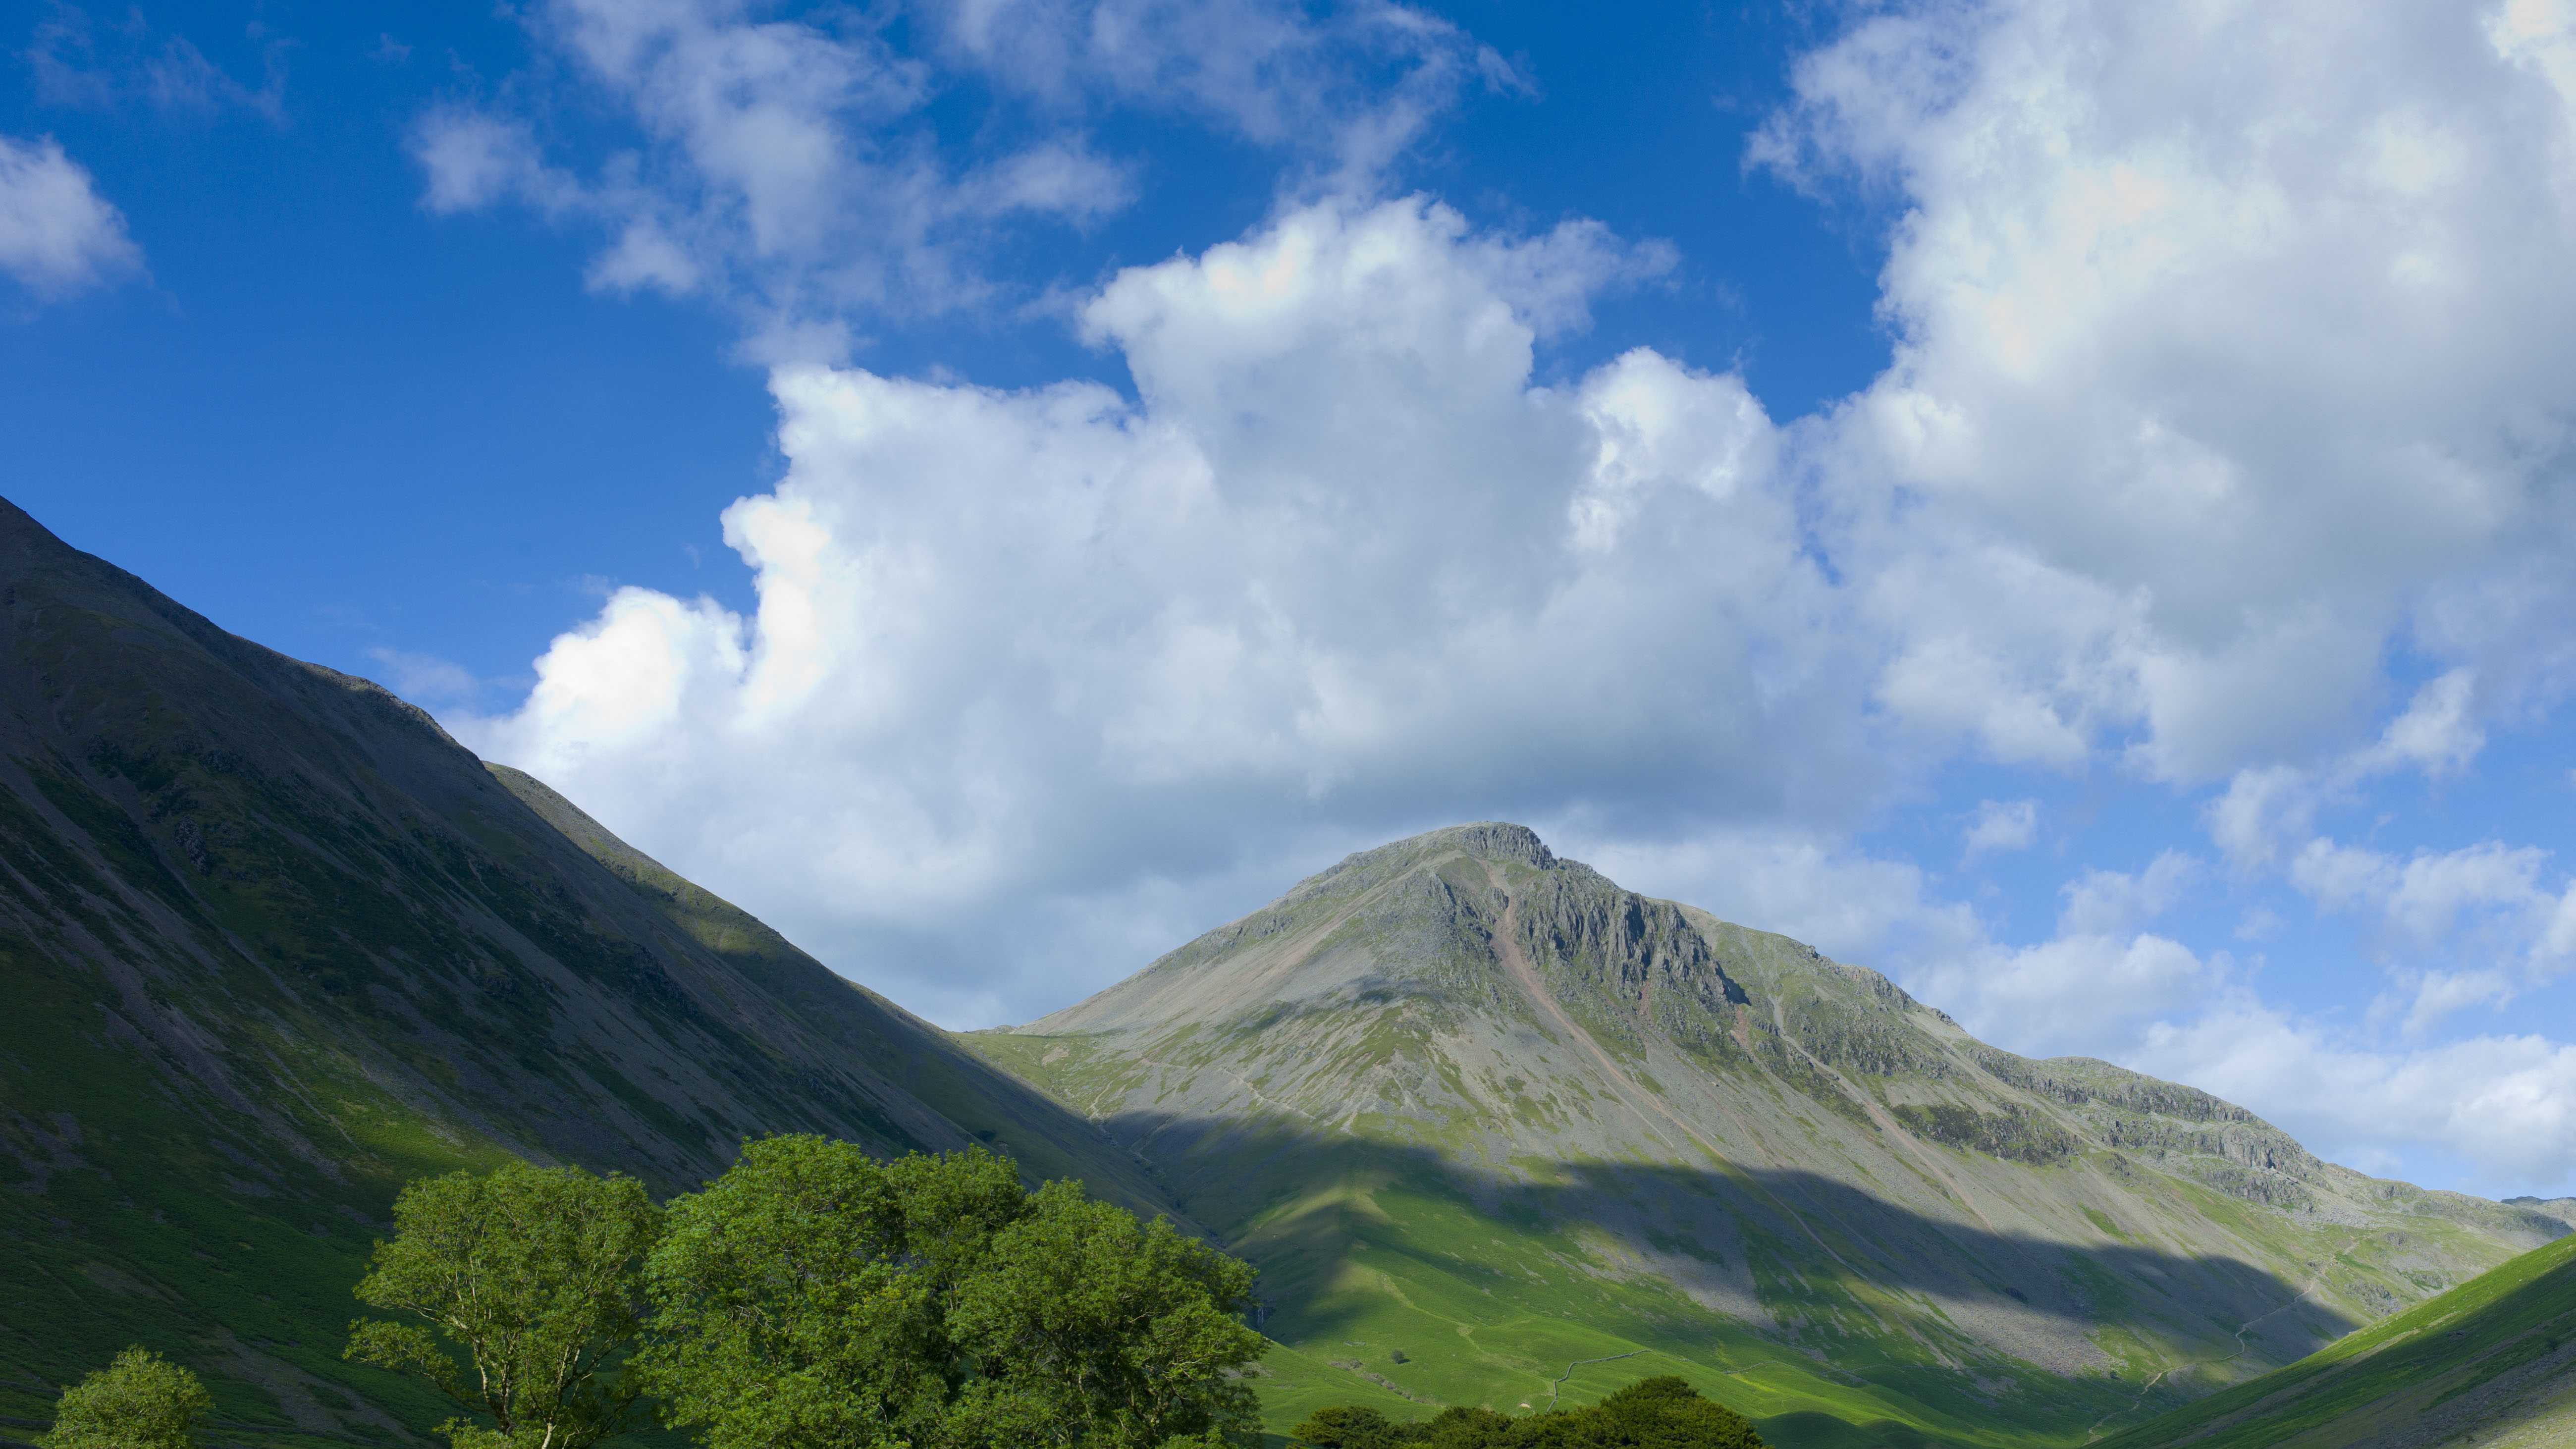 UNITED KINGDOM - JULY 13: Wasdale Fell and Great Gable by Wastwater in the shadow of Sca Fell Pike in the Lake District National Park, Cumbria, UK (Photo by Tim Graham/Getty Images)